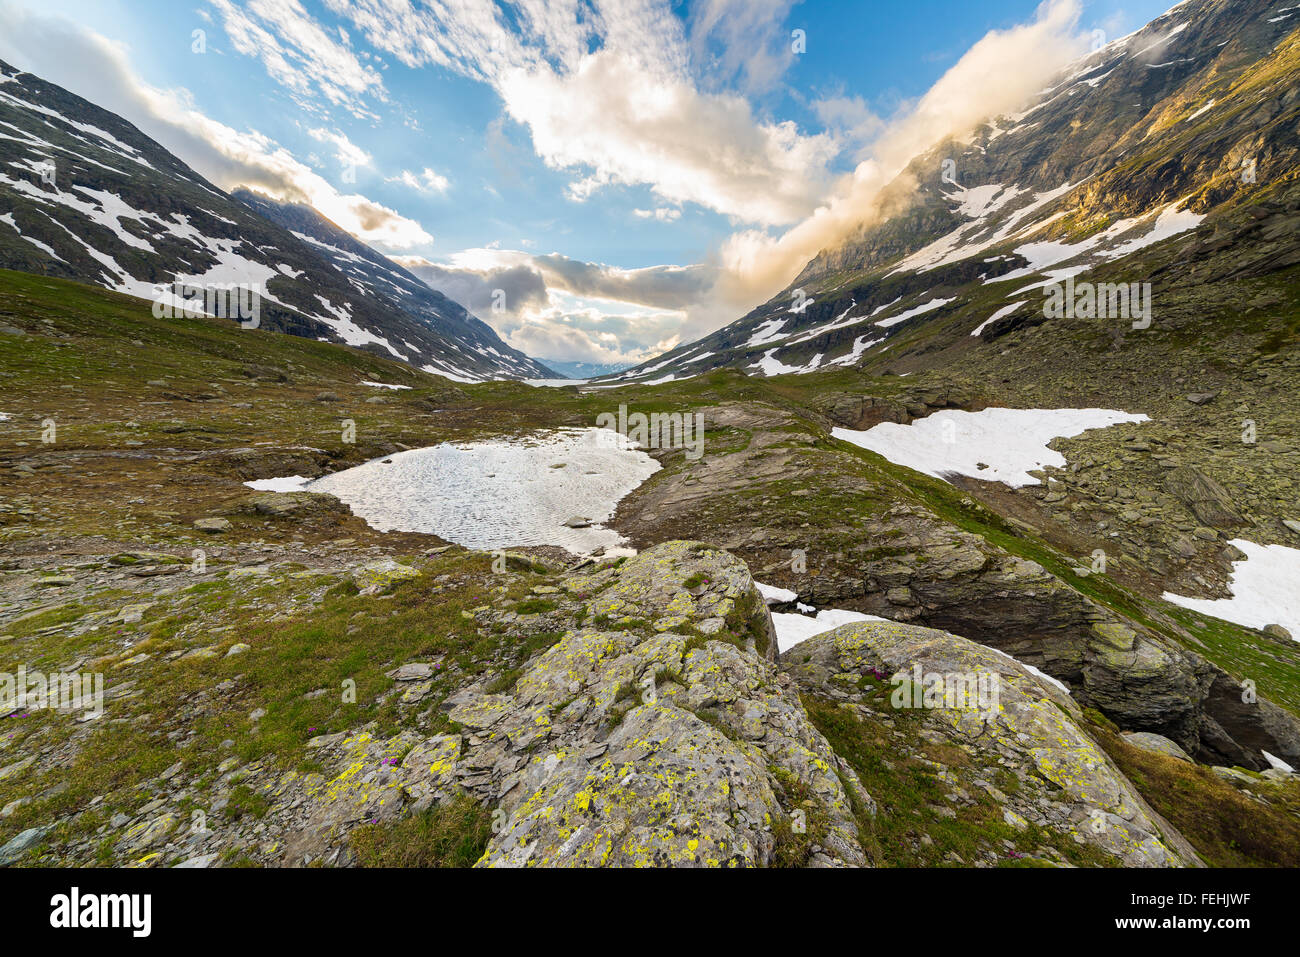 Flowing waters from melting snow feeding high altitude alpine lake in idyllic uncontaminated environment once covered - Stock Image